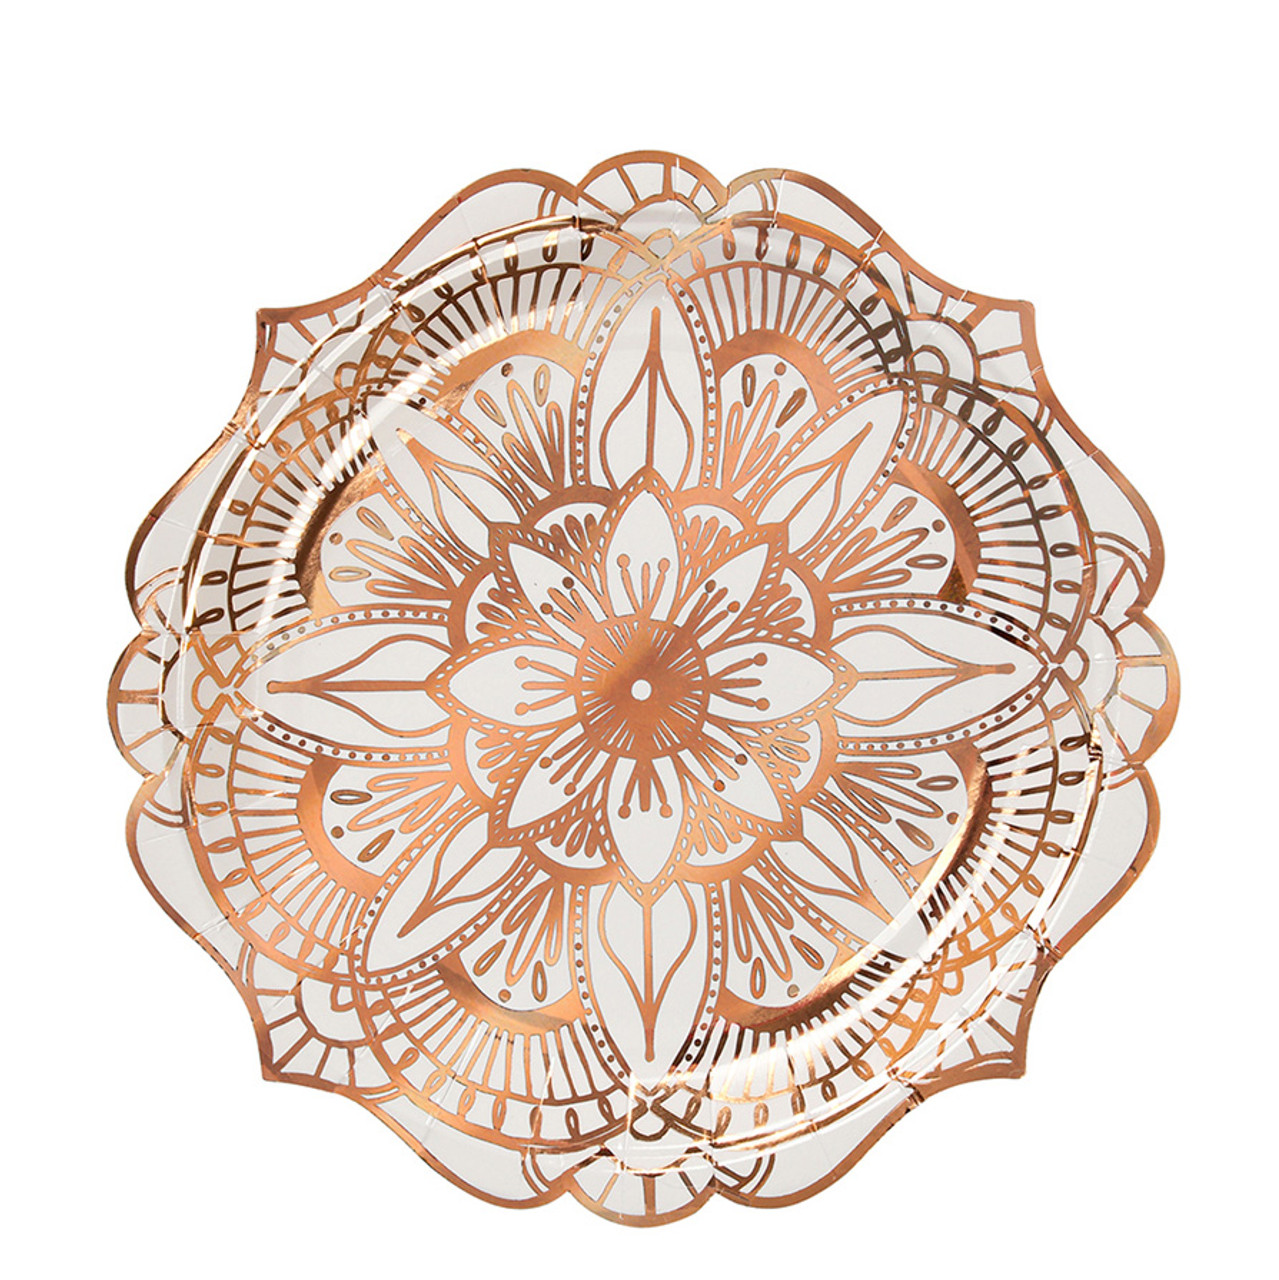 Mandala Plates Small  sc 1 st  Dream in Plastic & Mandala Plates Small - Dream in Plastic